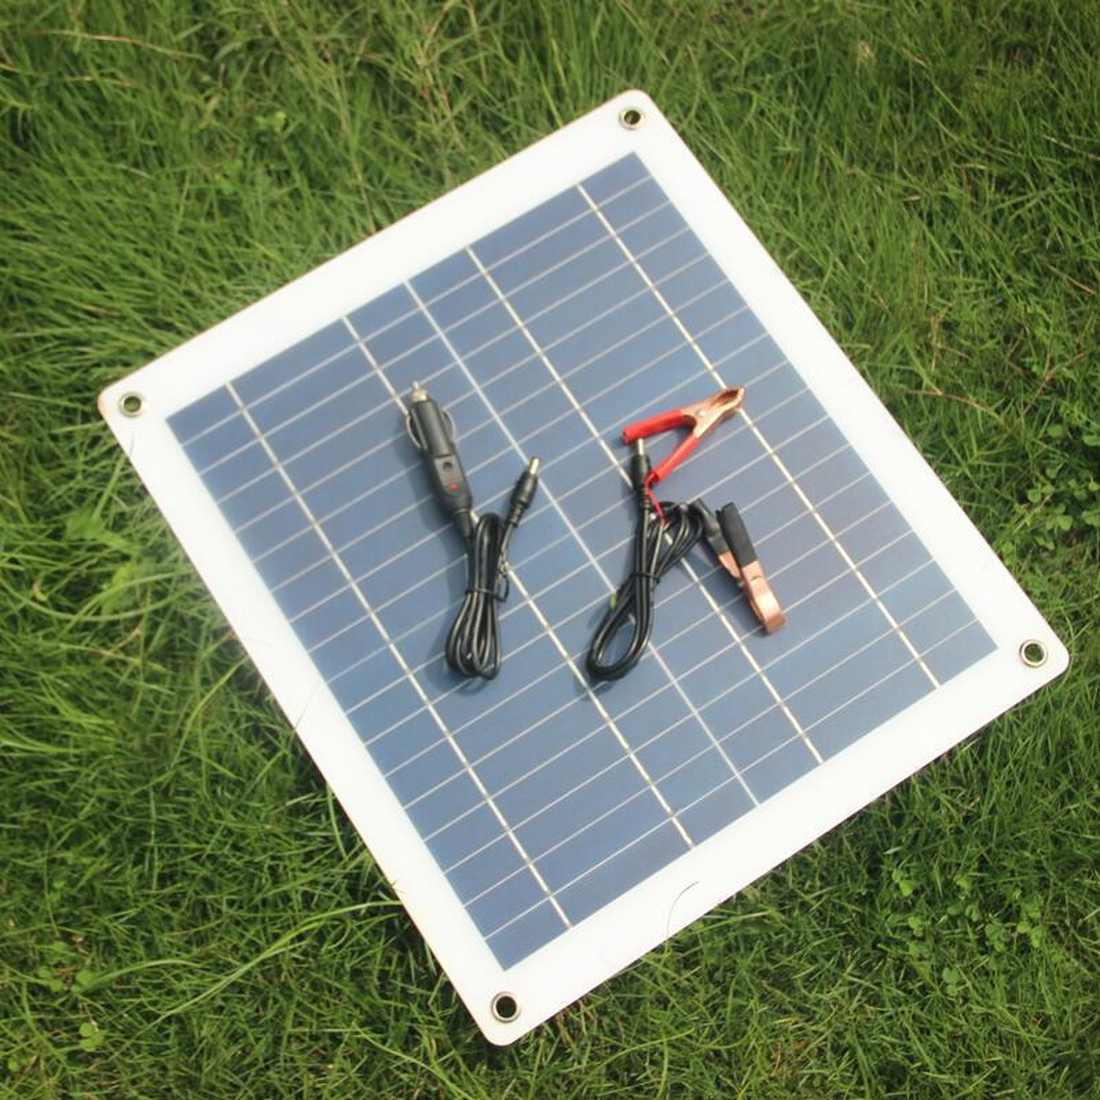 SOPATiO 1 Pcs 23W 18V Semi-flexible Multicrystalline Solar Panel with Junction Box Backside Power for 12V Car Battery Charger diy 5v 2a voltage regulator junction box solar panel charger special kit